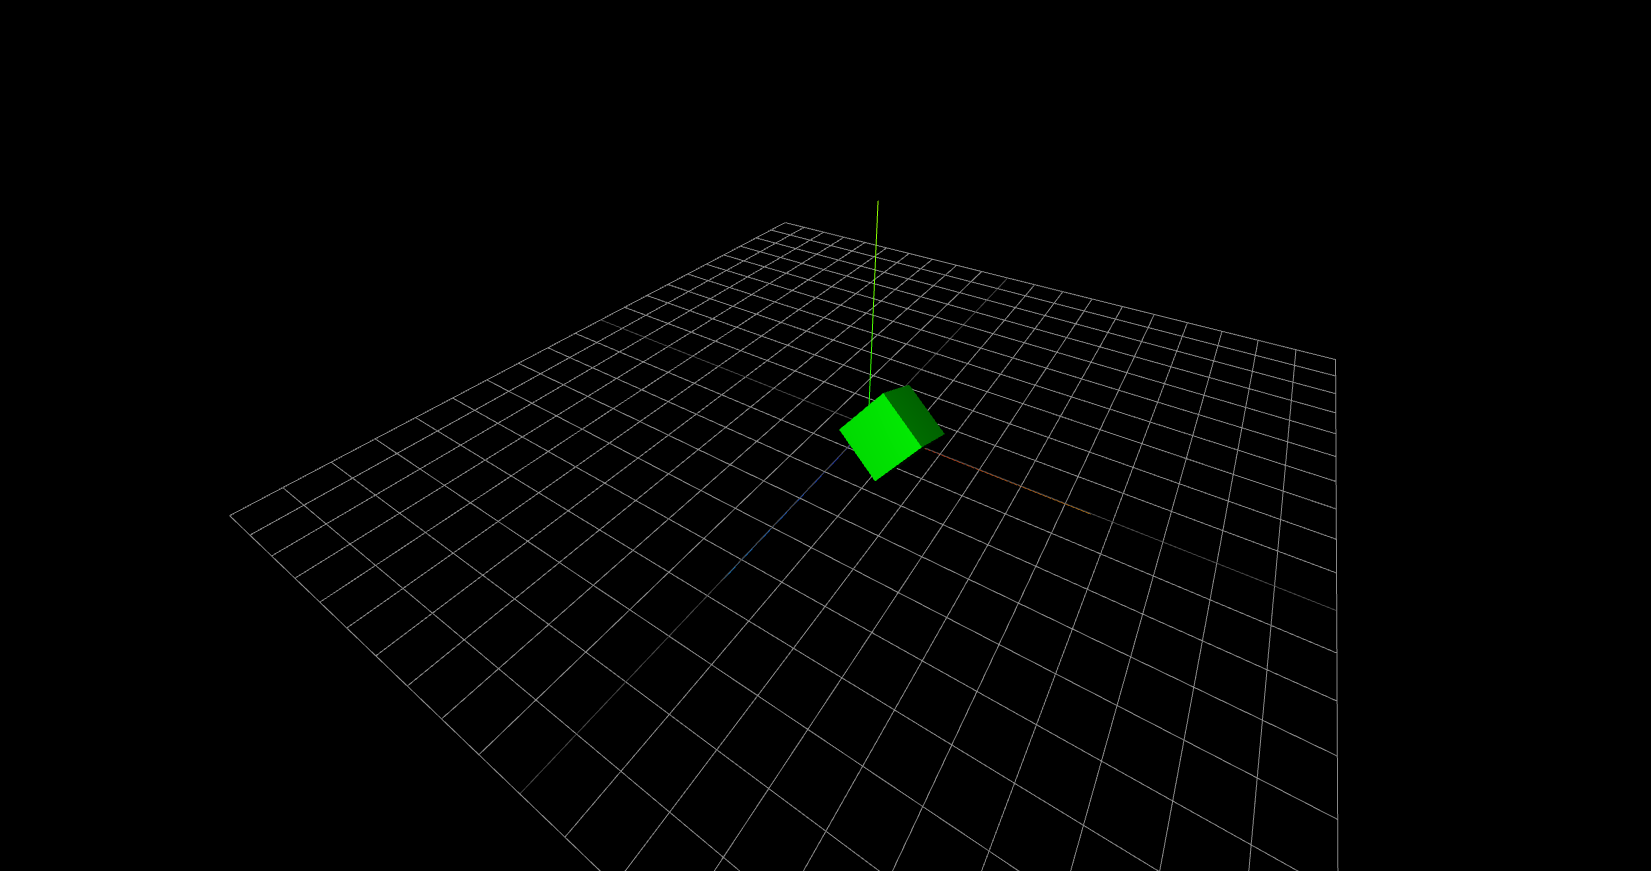 Three.js basic scene demo